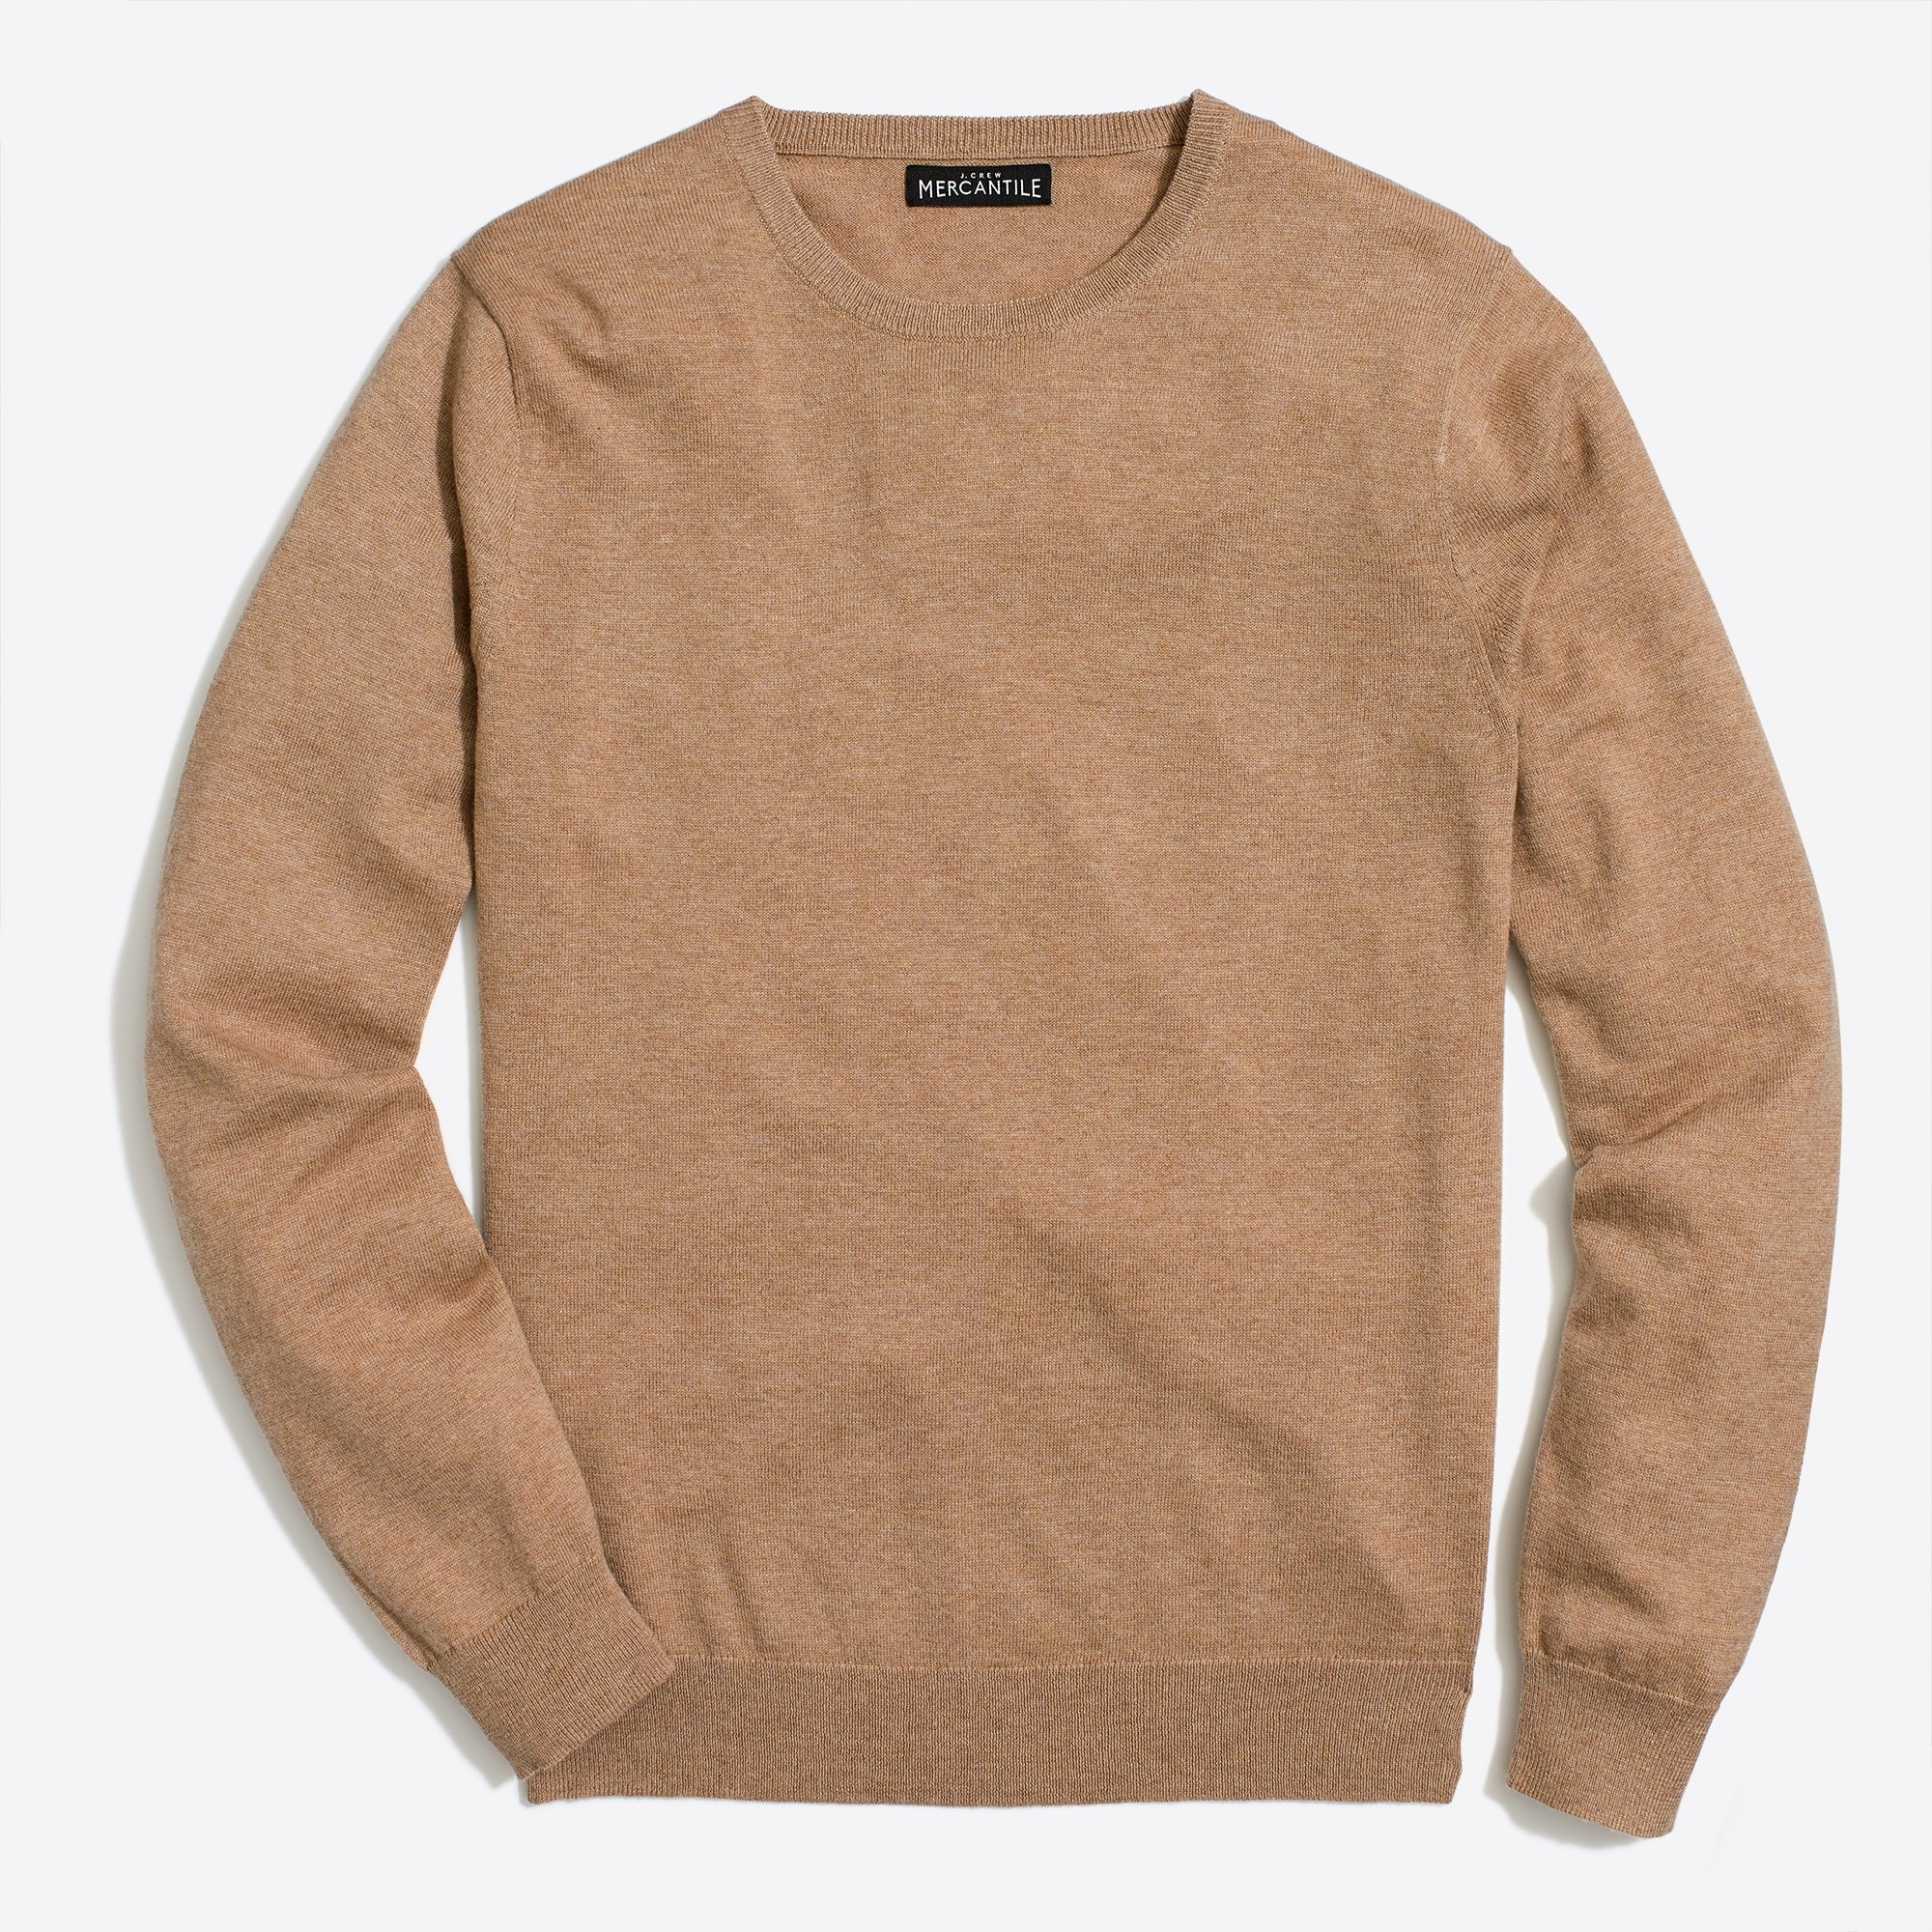 factory mens Crewneck sweater in perfect merino wool blend